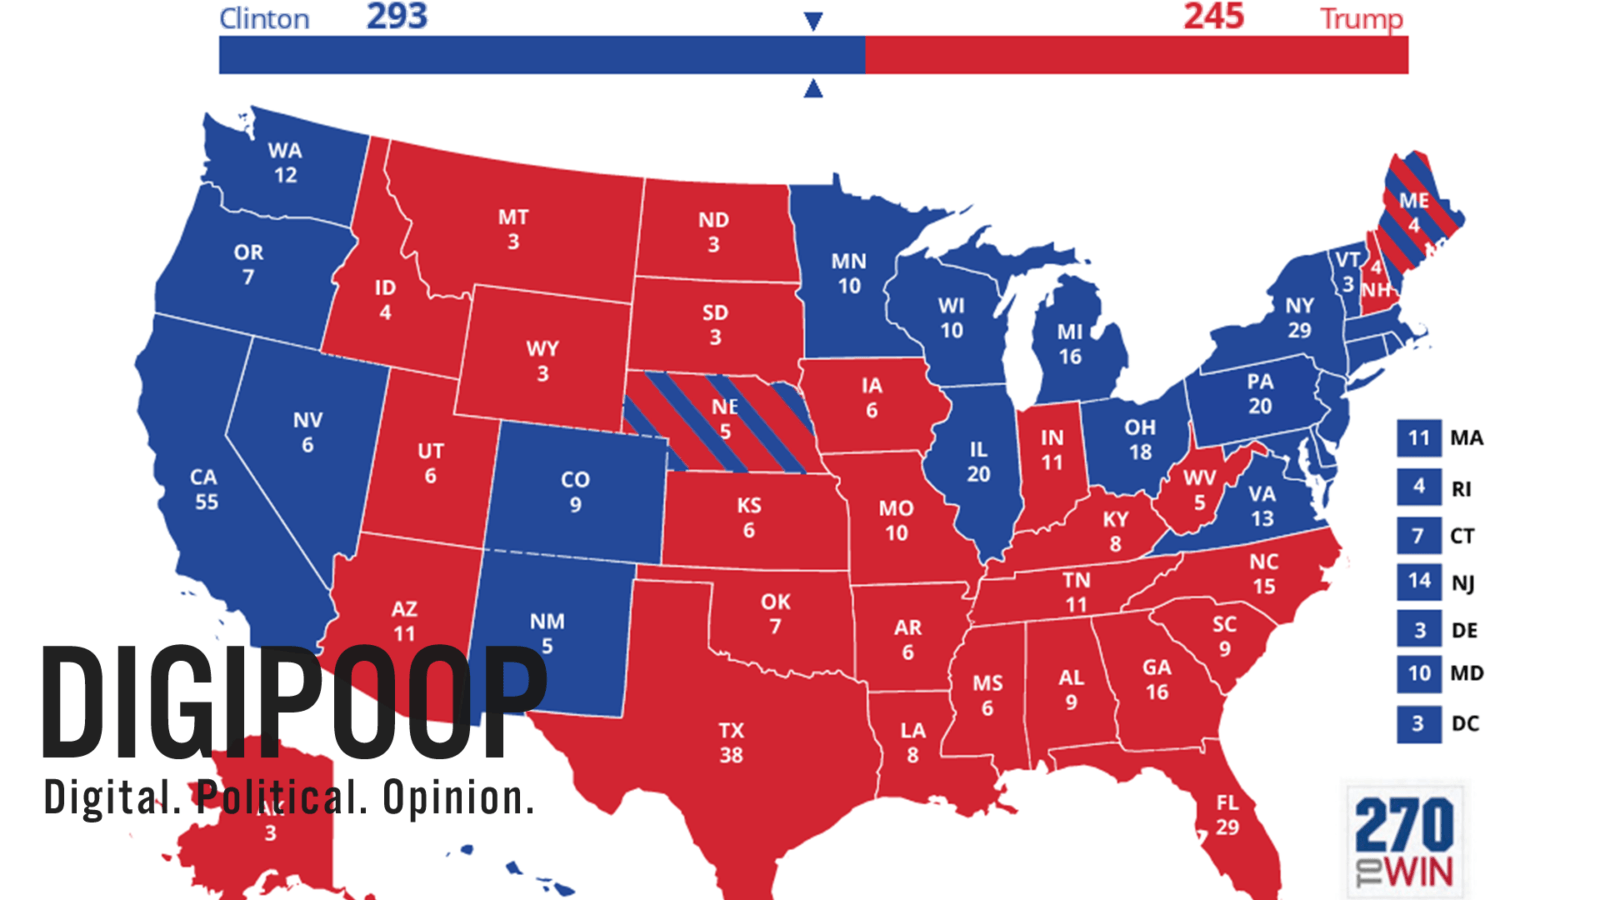 2016 predictions map